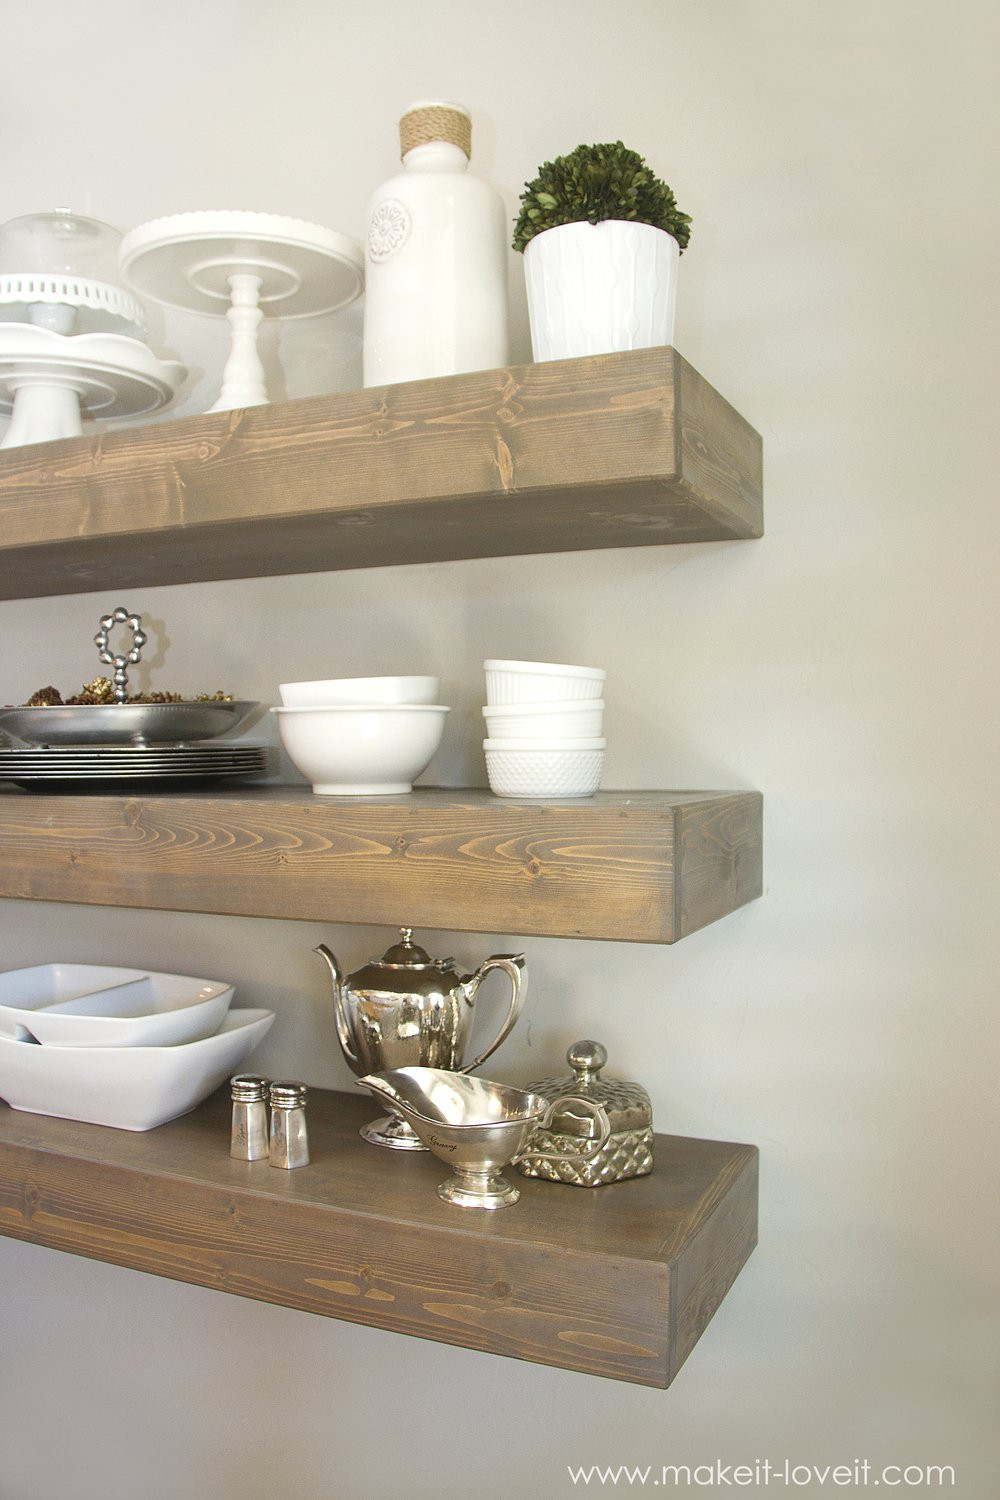 Best ideas about DIY Floating Kitchen Shelves . Save or Pin Fabulous DIY Floating Shelves to Make landeelu Now.